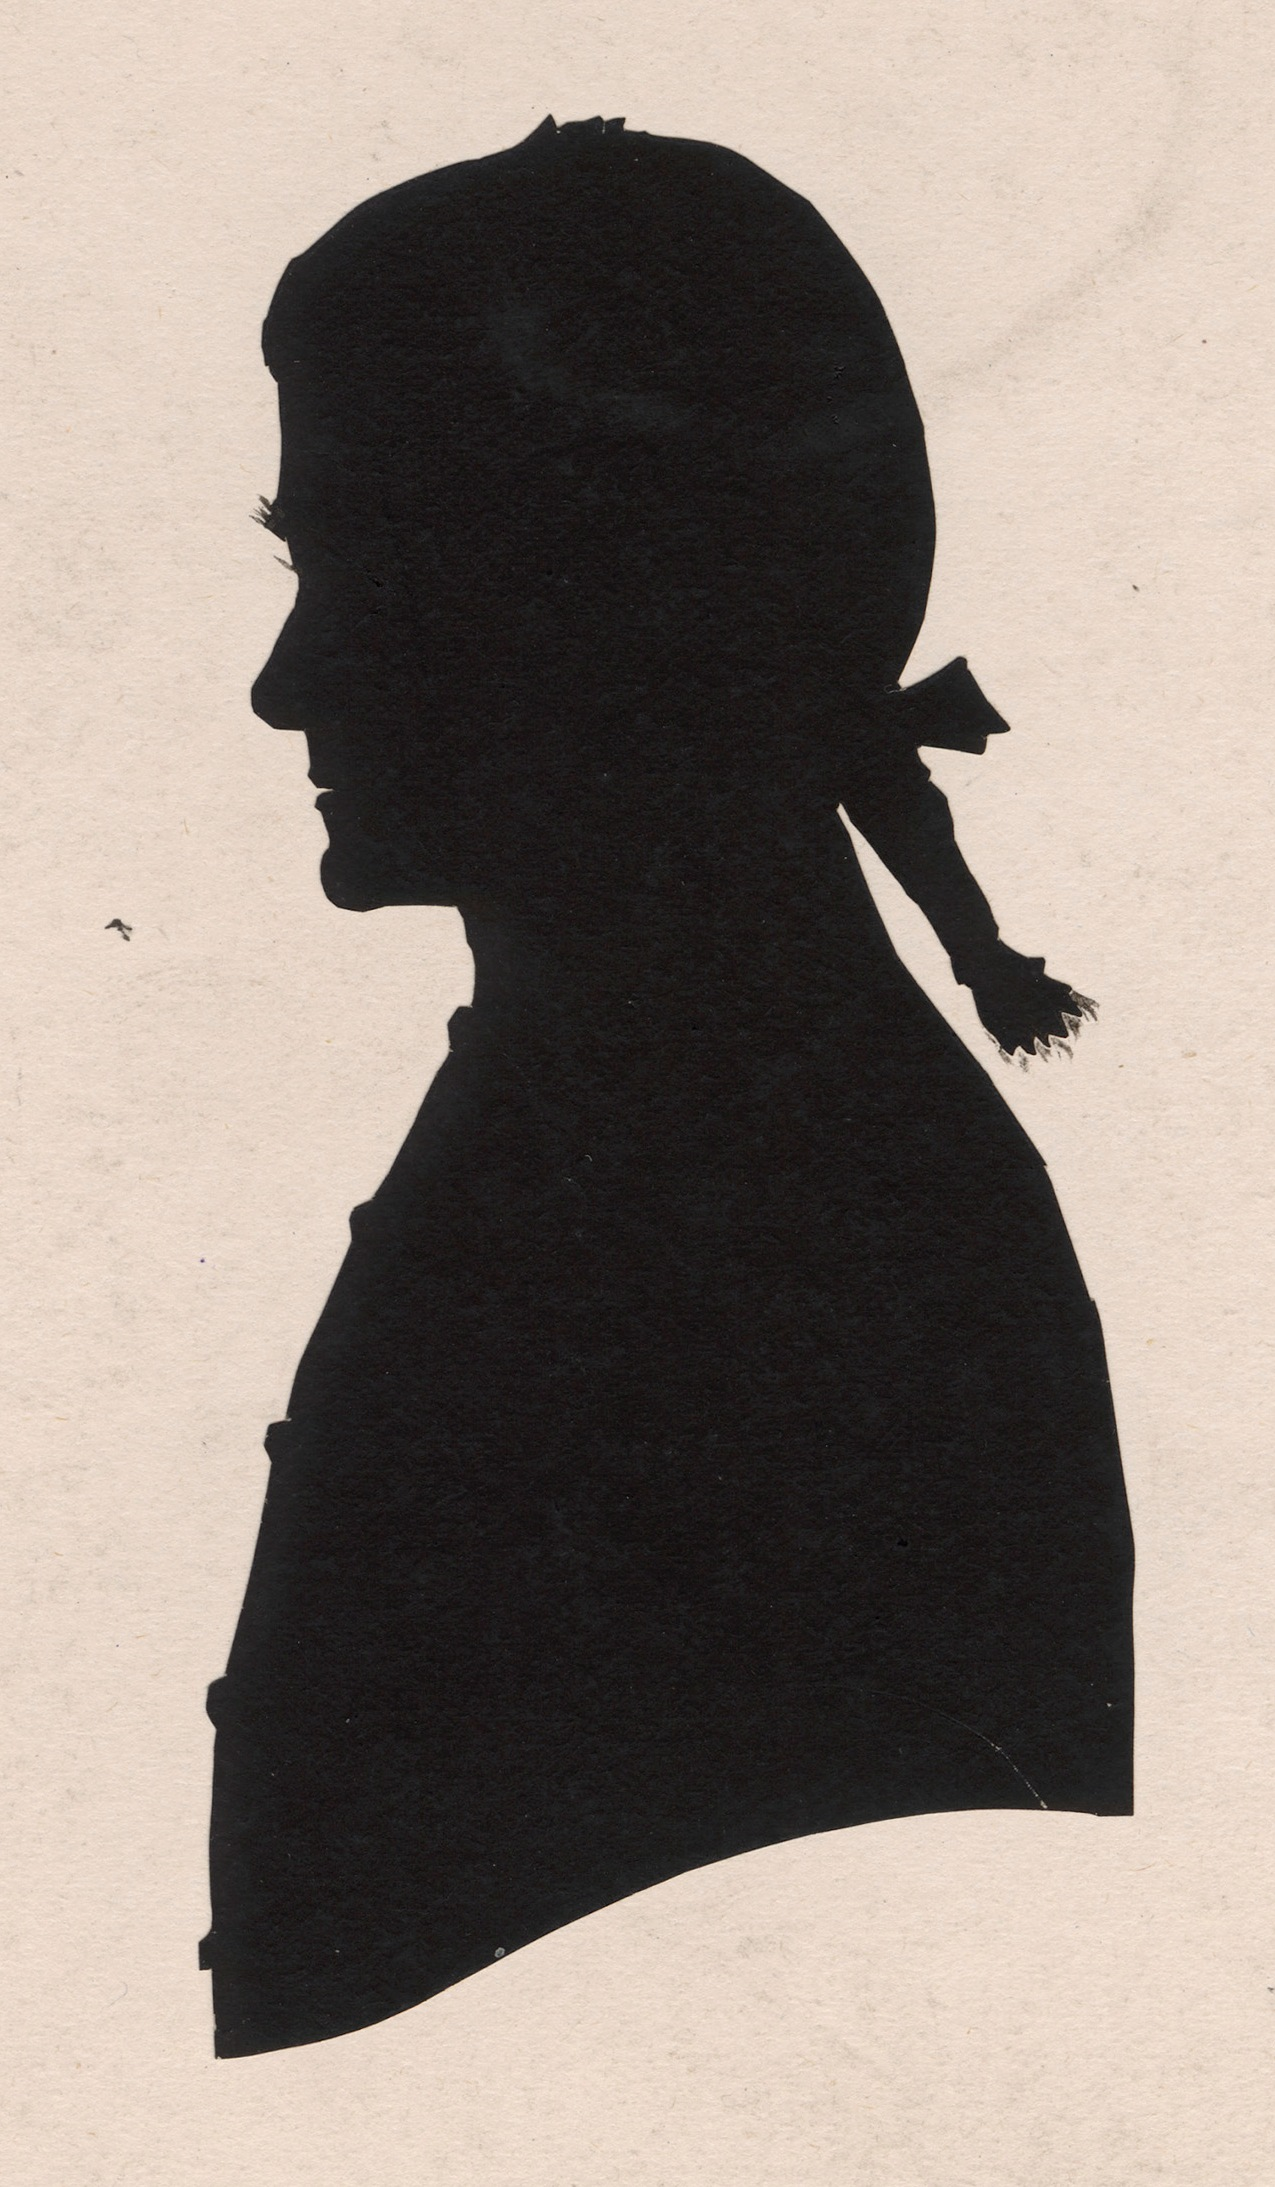 Horatio Nelson (1758-1805), Vice-Admiral and victor of Trafalgar, by Benjamin Pearce, silhouette, 1805. © National Portrait Gallery, London